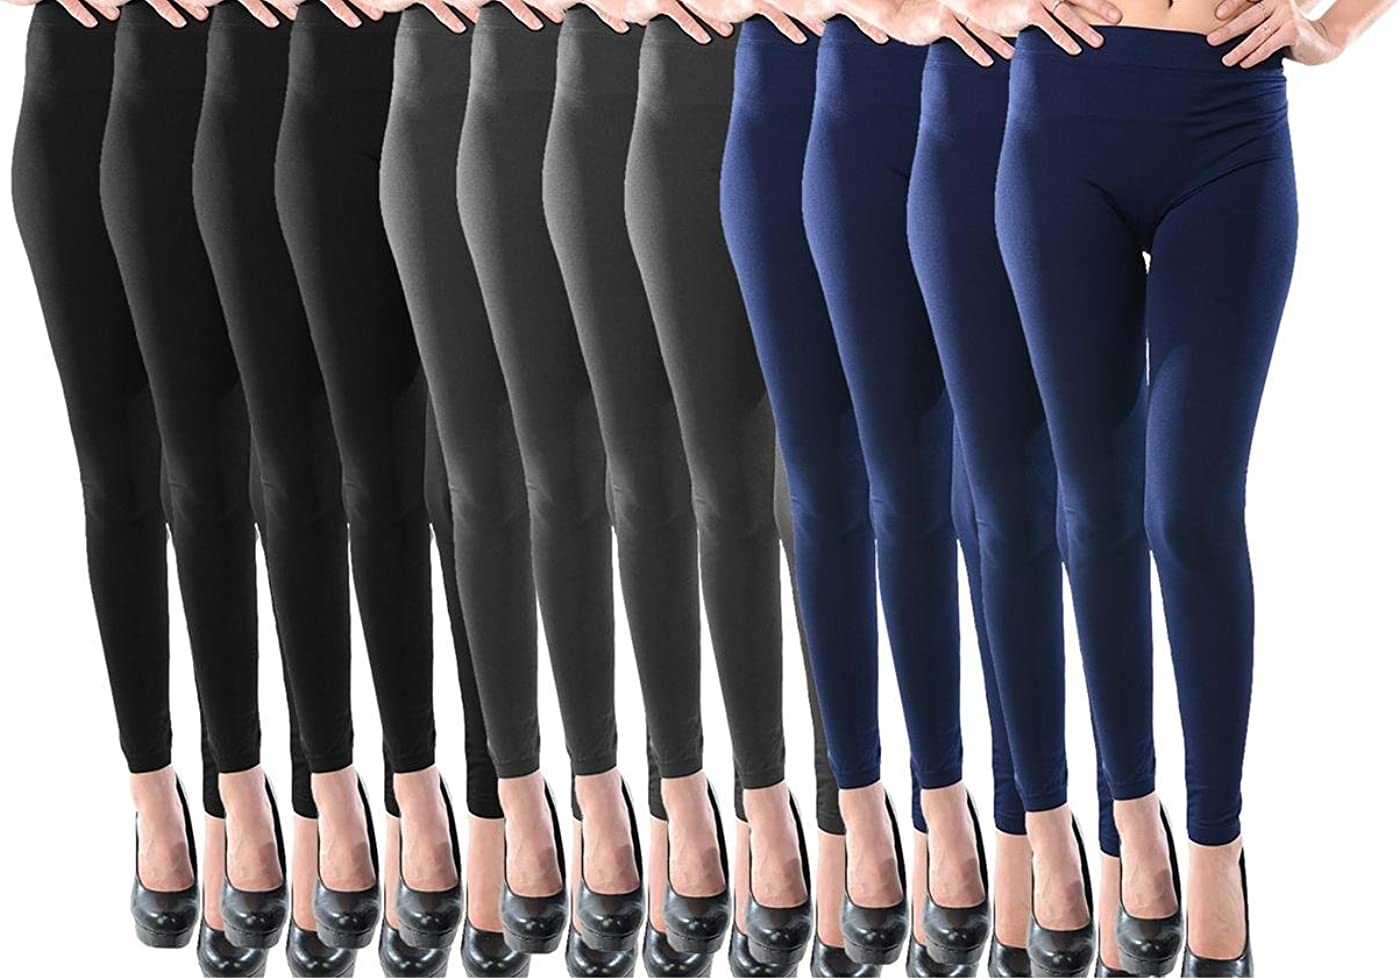 Assort pantyhose with your